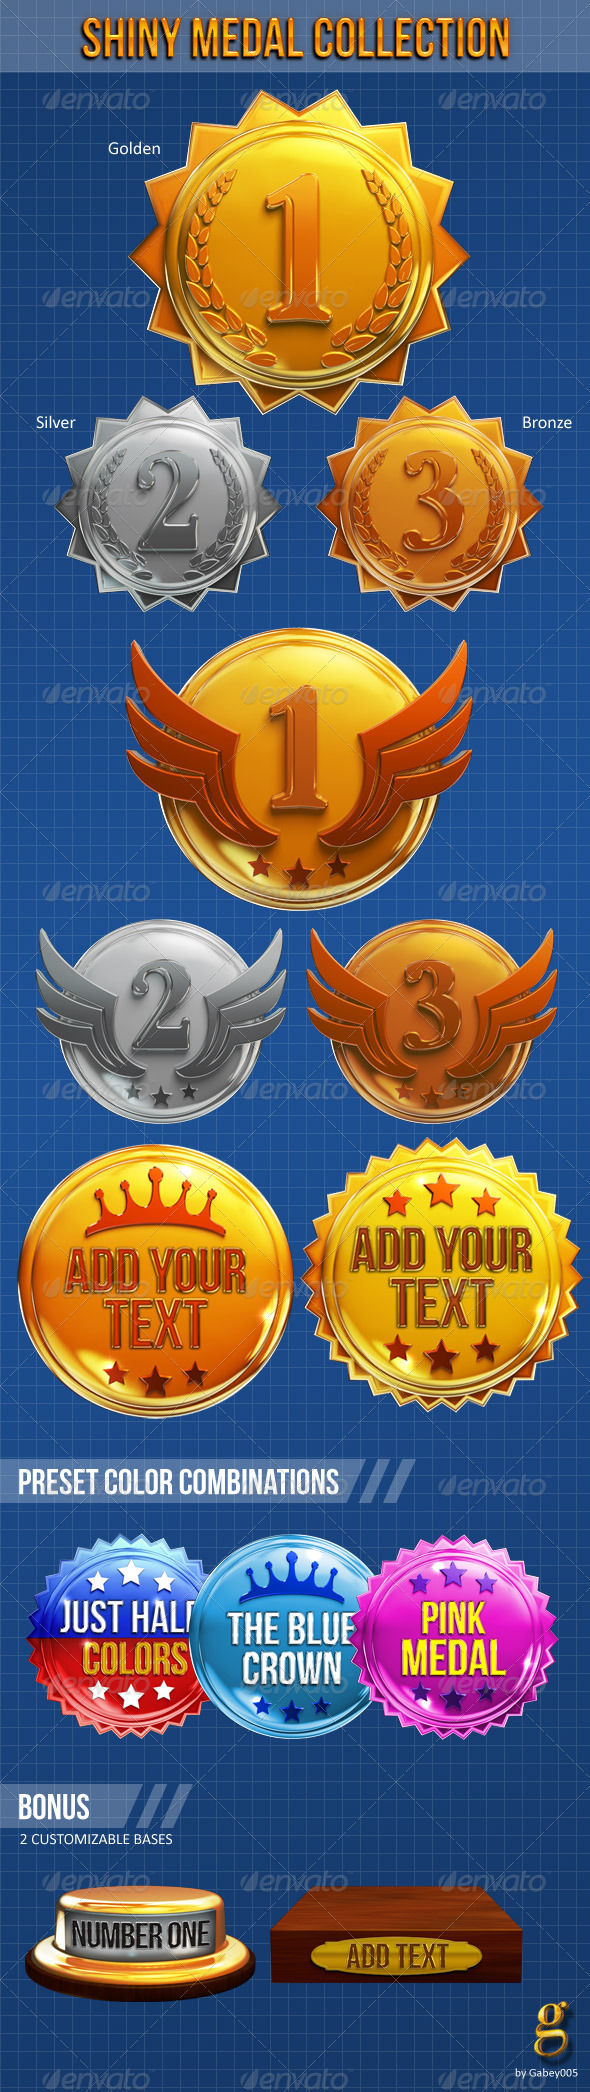 GraphicRiver Shiny Medal Collection 3645935